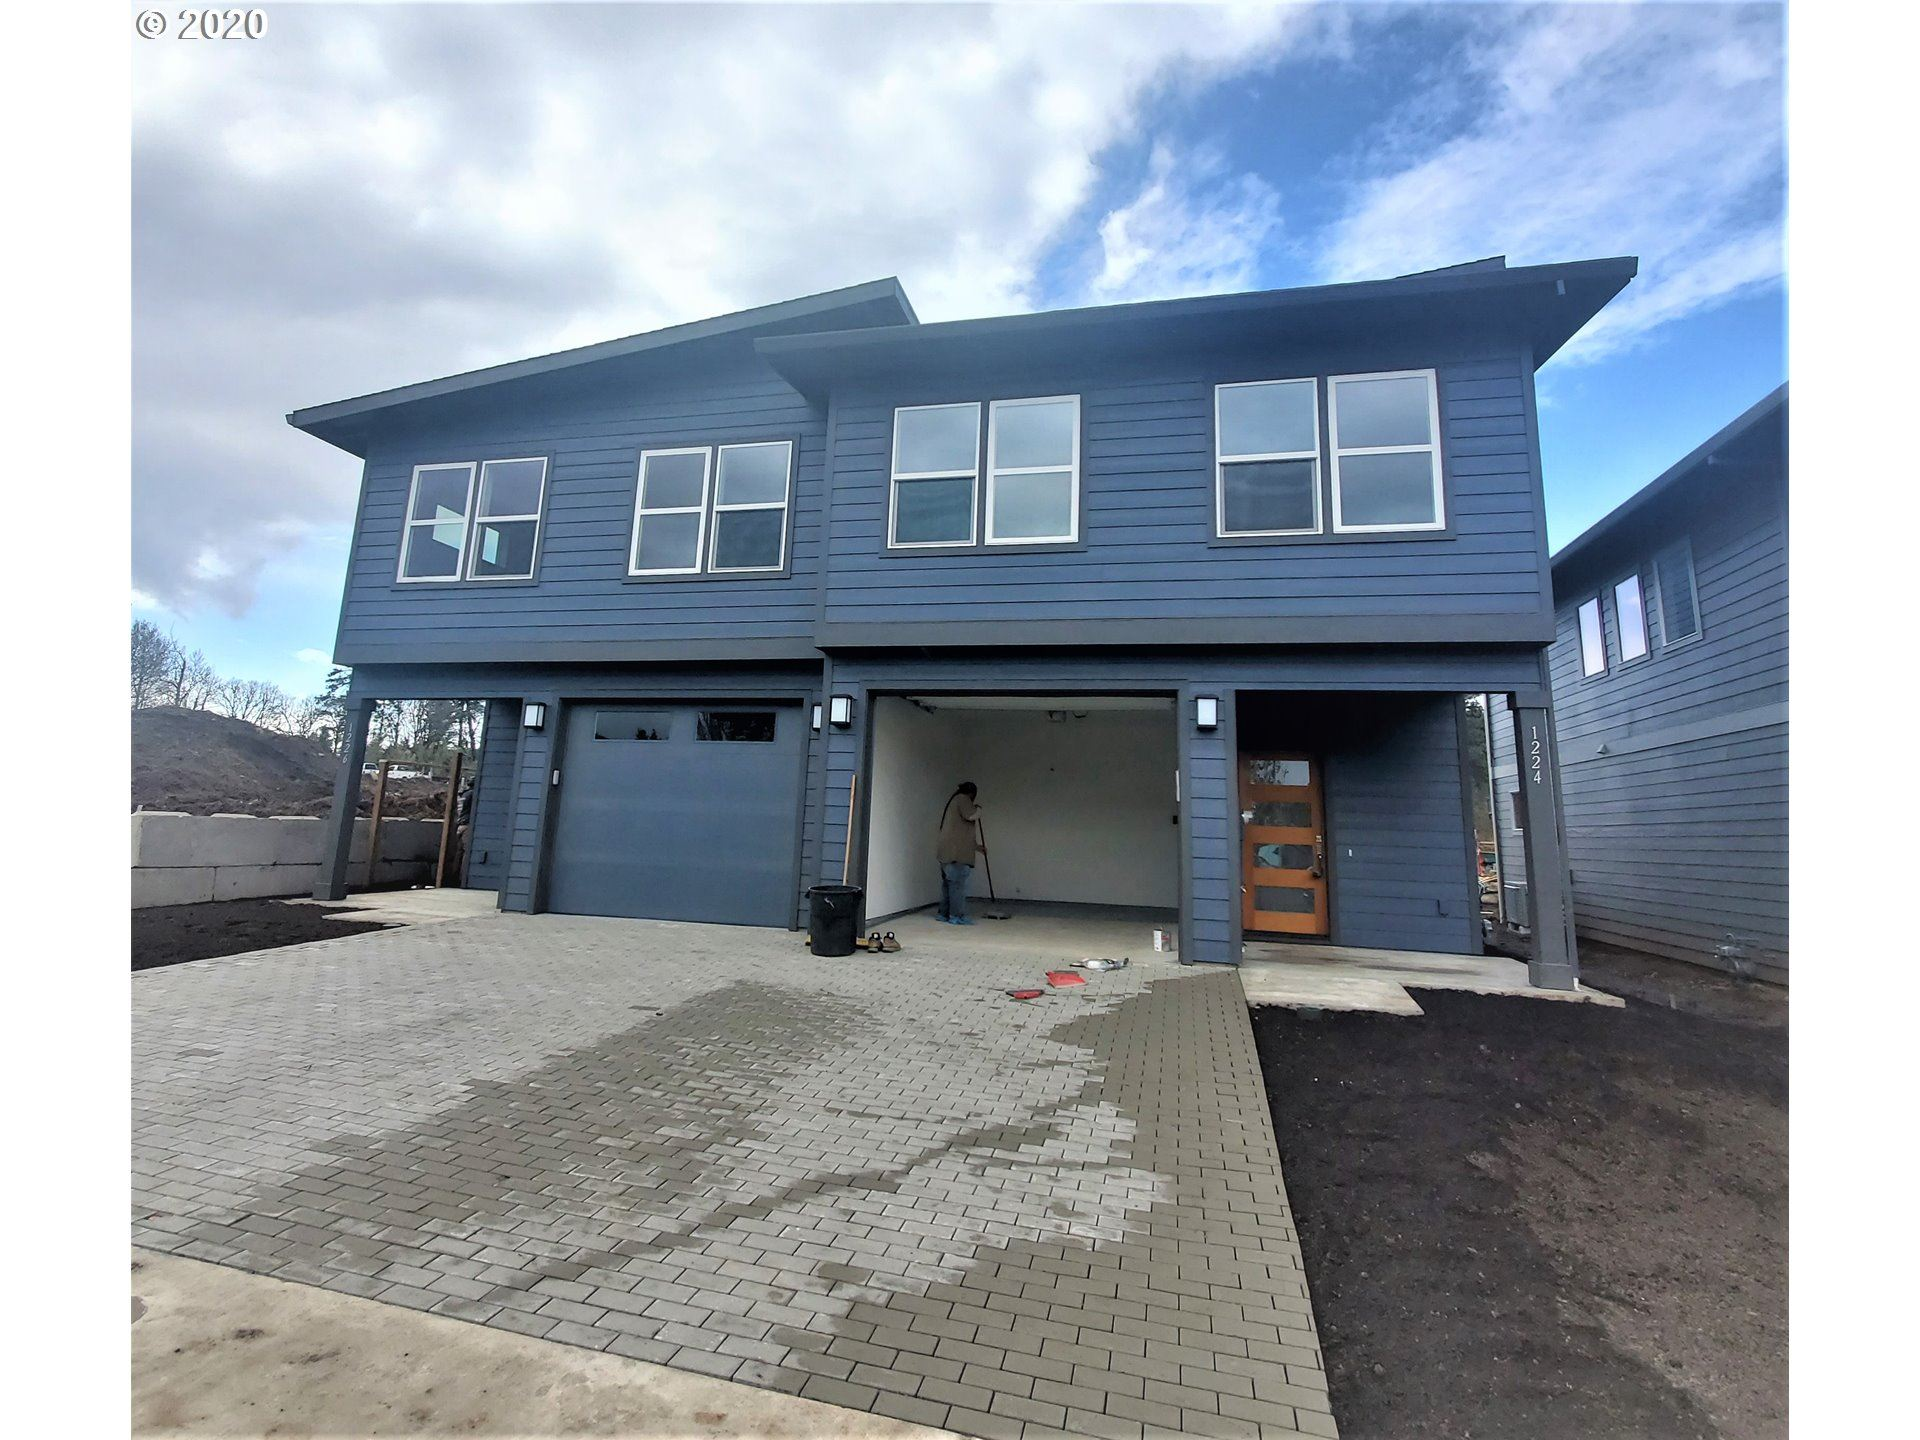 Photo of 1226 29th ST, Hood River, OR 97031 (MLS # 20272879)